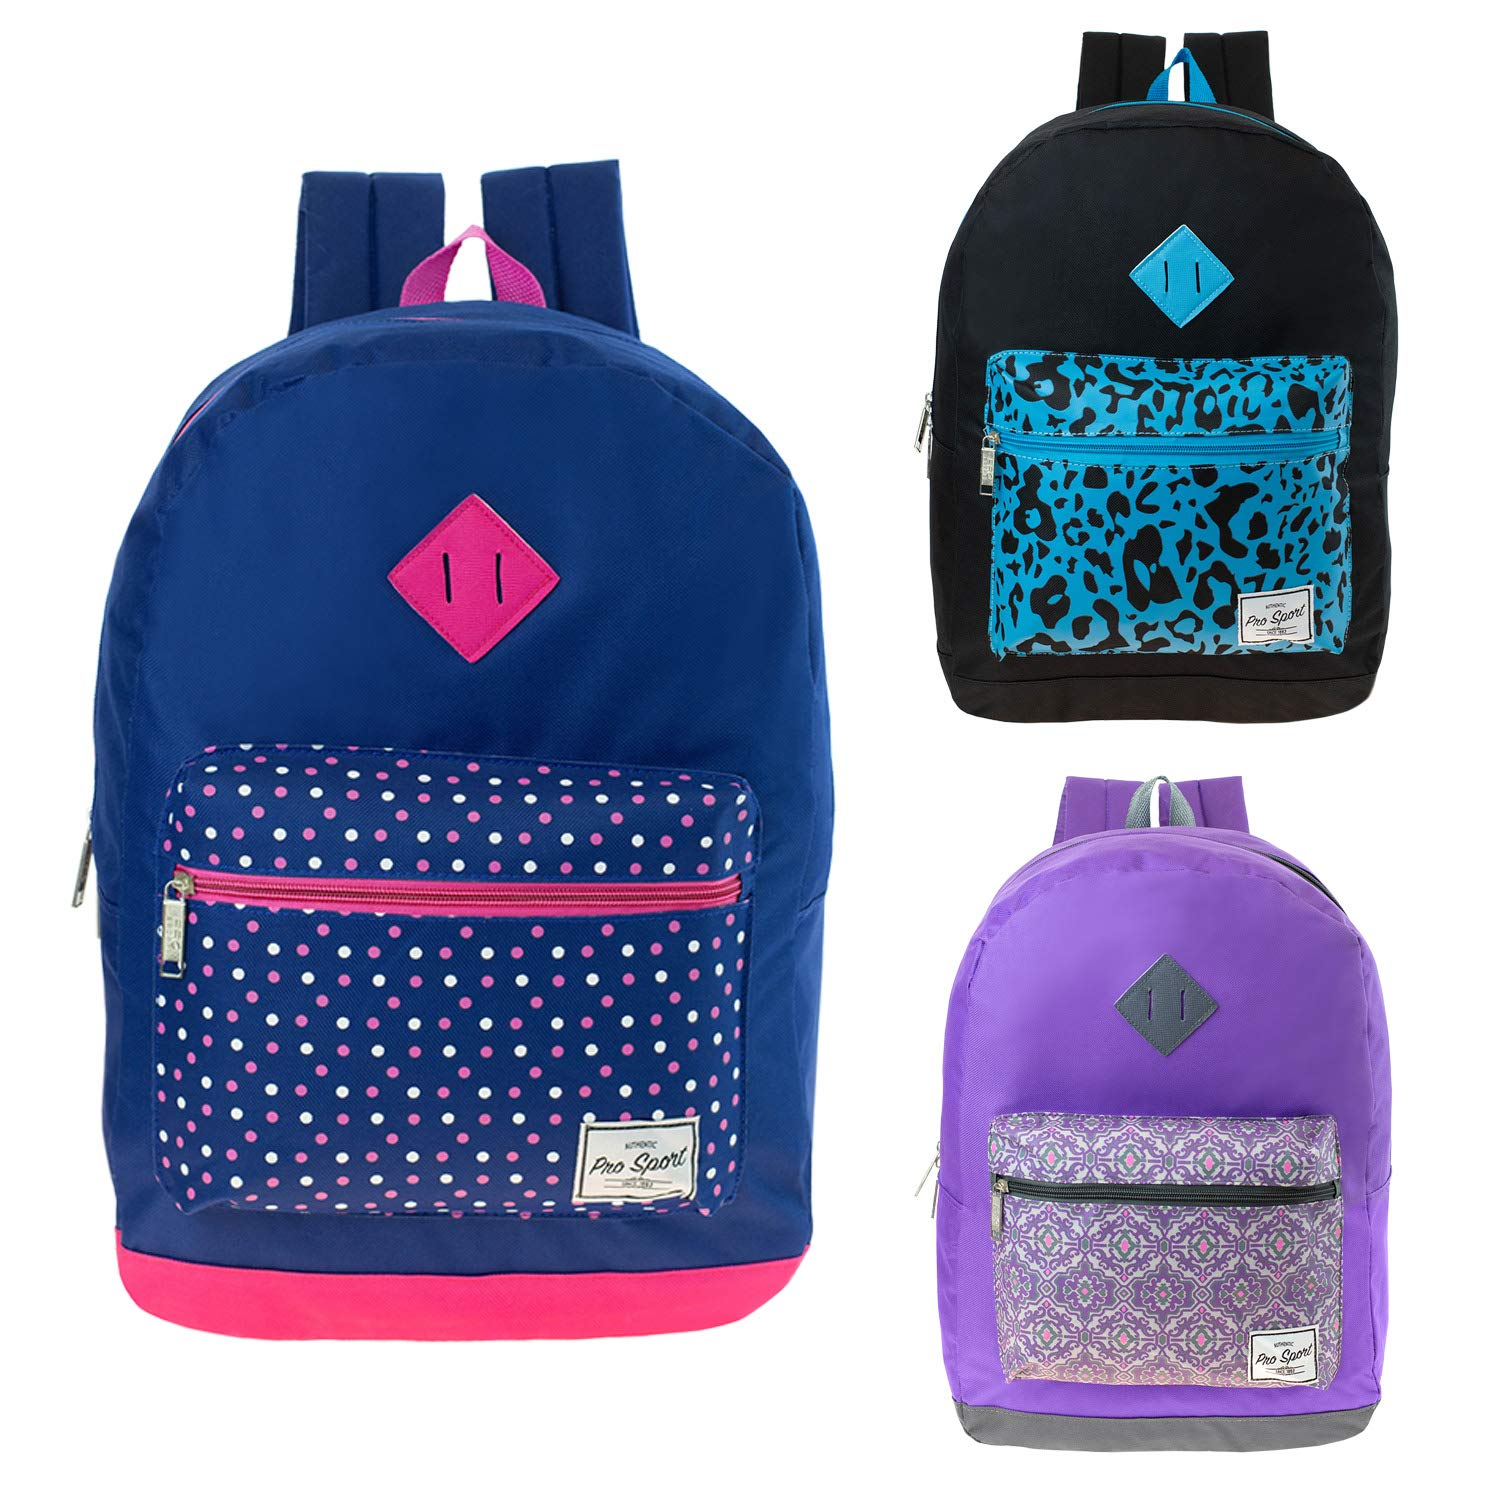 17'' Wholesale Backpacks In 3 Assorted Colors - Bulk Case of 24 Kids Classic Bookbags